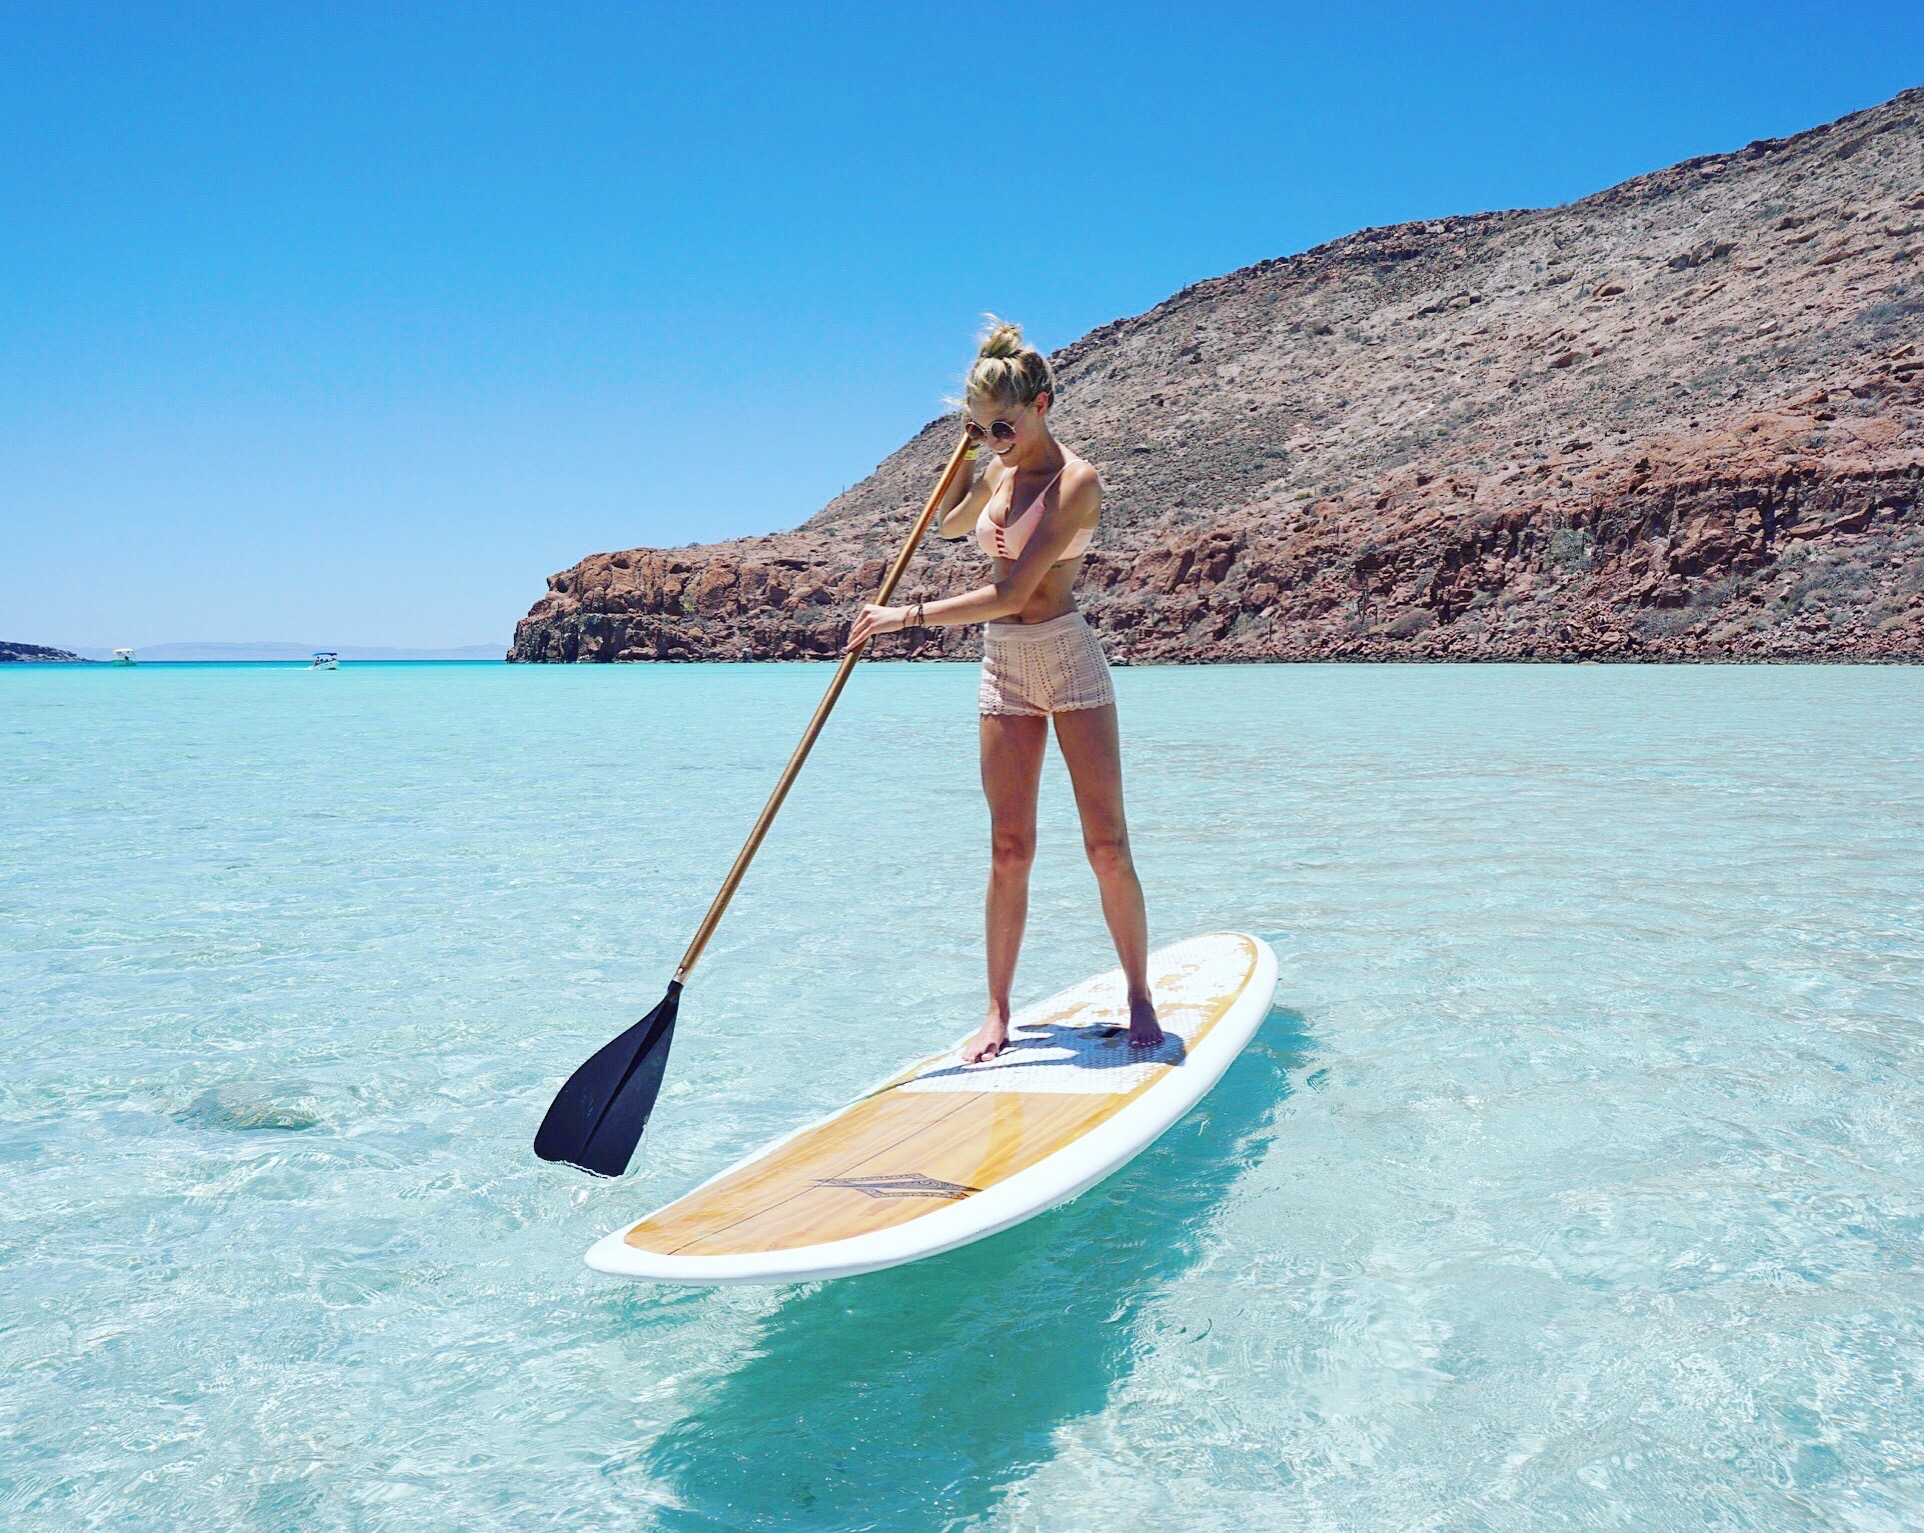 First time paddle boarding! The wind kept pushing me out to sea I had to swim surf style back